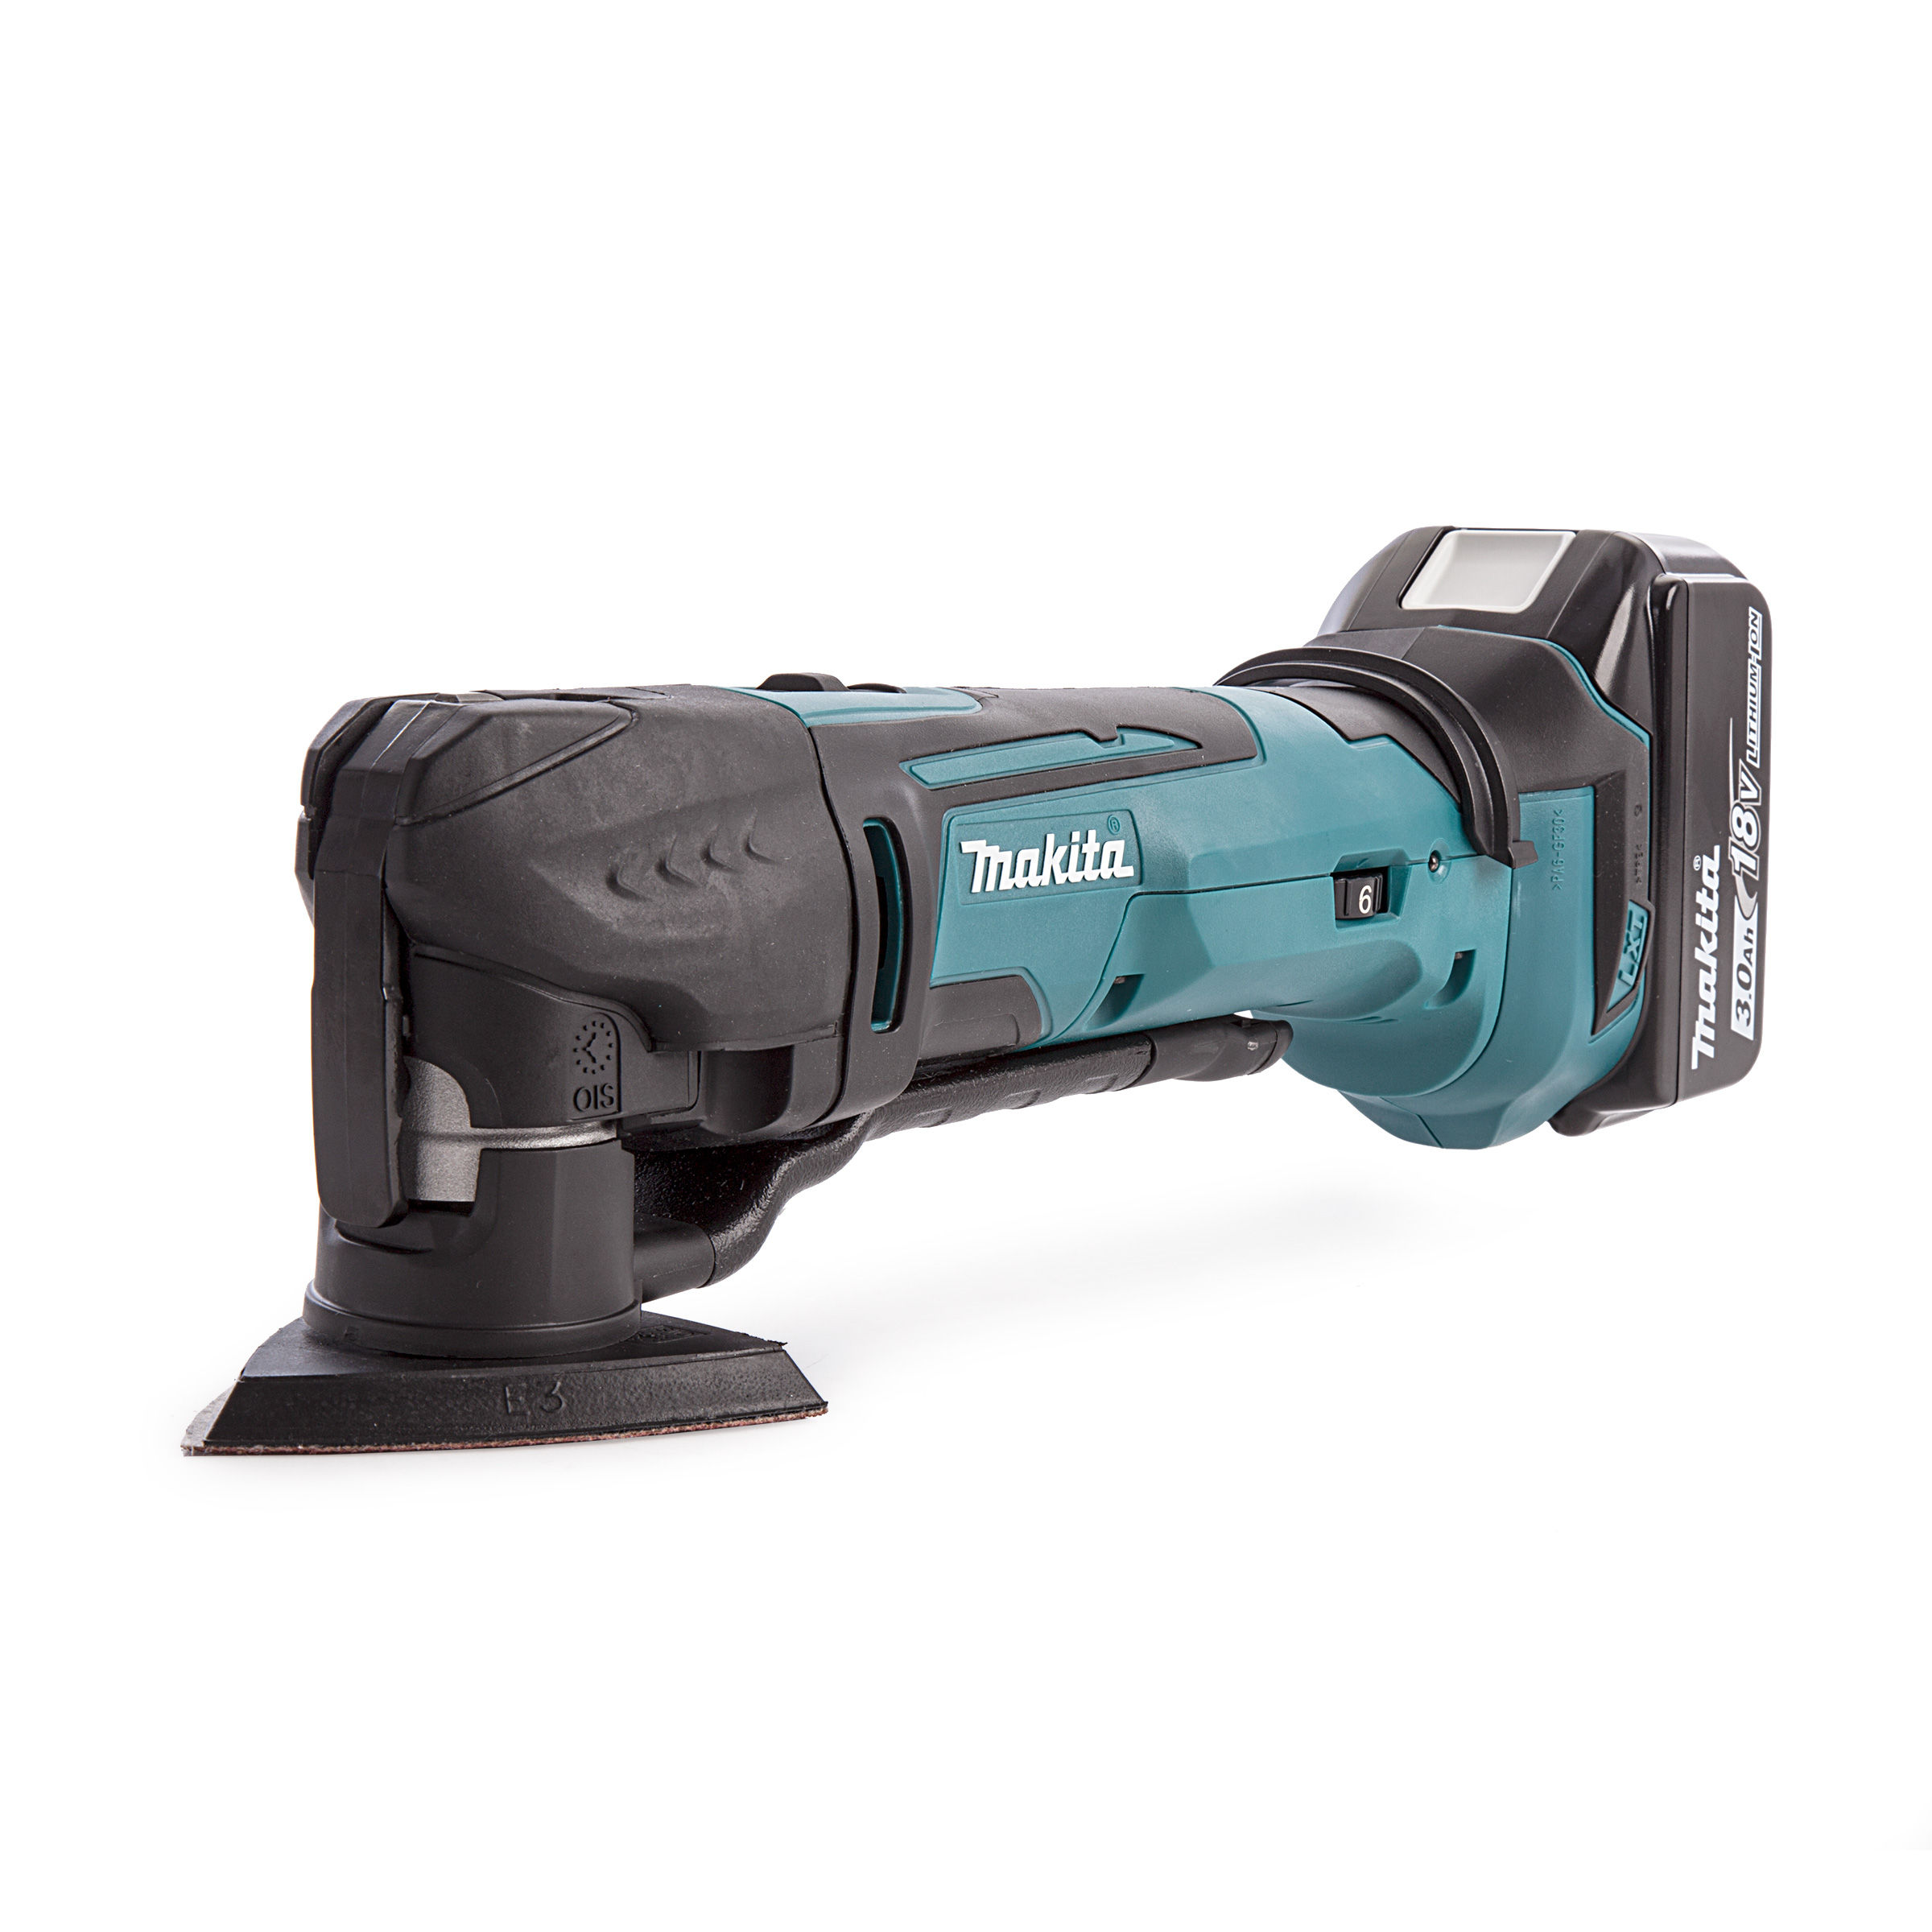 toolstop makita dtm51 multi tool with dc18rc charger in. Black Bedroom Furniture Sets. Home Design Ideas